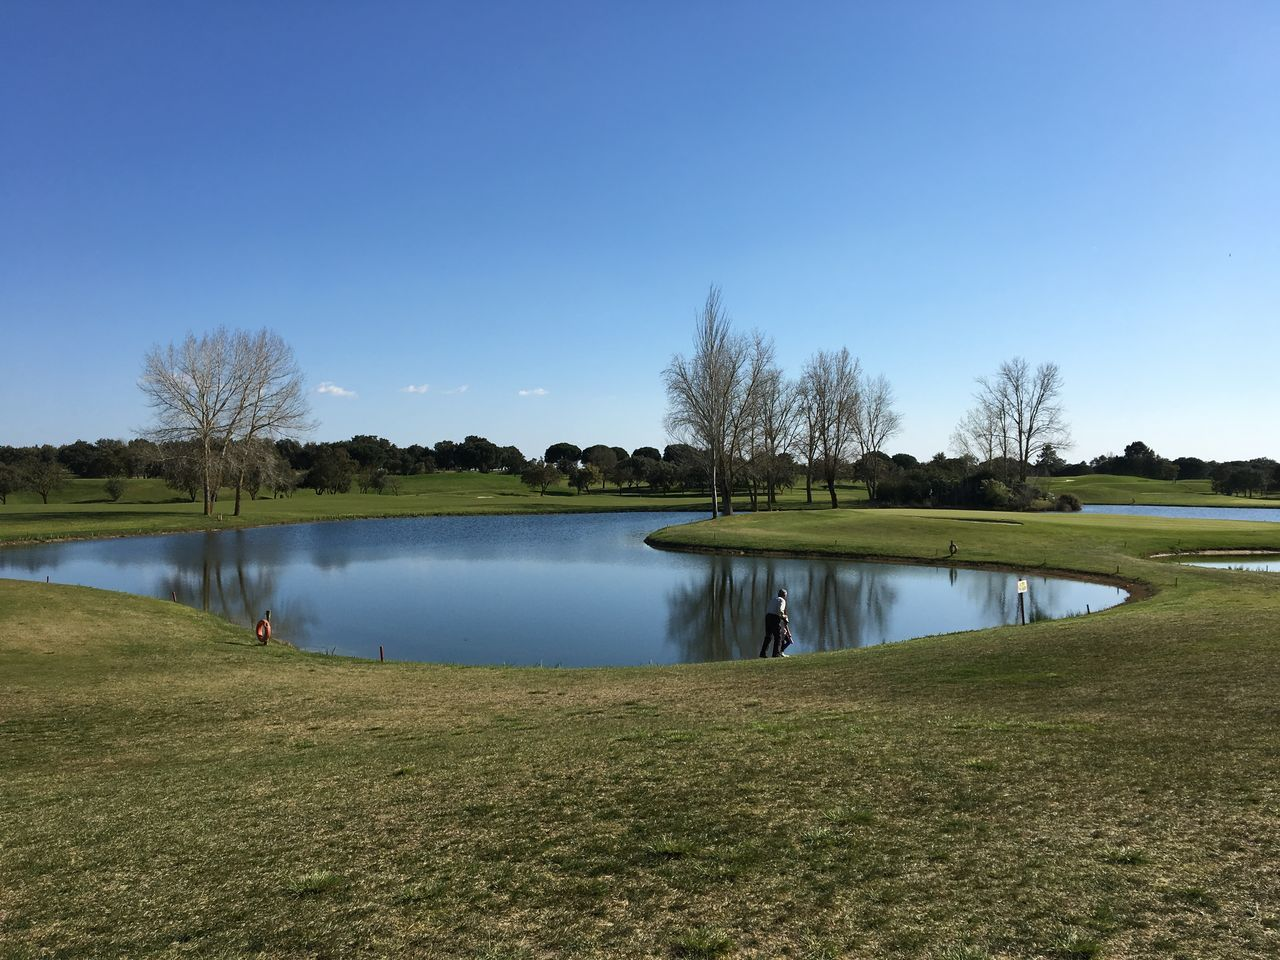 Beauty In Nature Blue Clear Sky Day Golf Golf Club Golf Course Golfer Grass Green - Golf Course Lake Nature No People Outdoors Scenics Sky Tranquil Scene Tranquility Tree Water